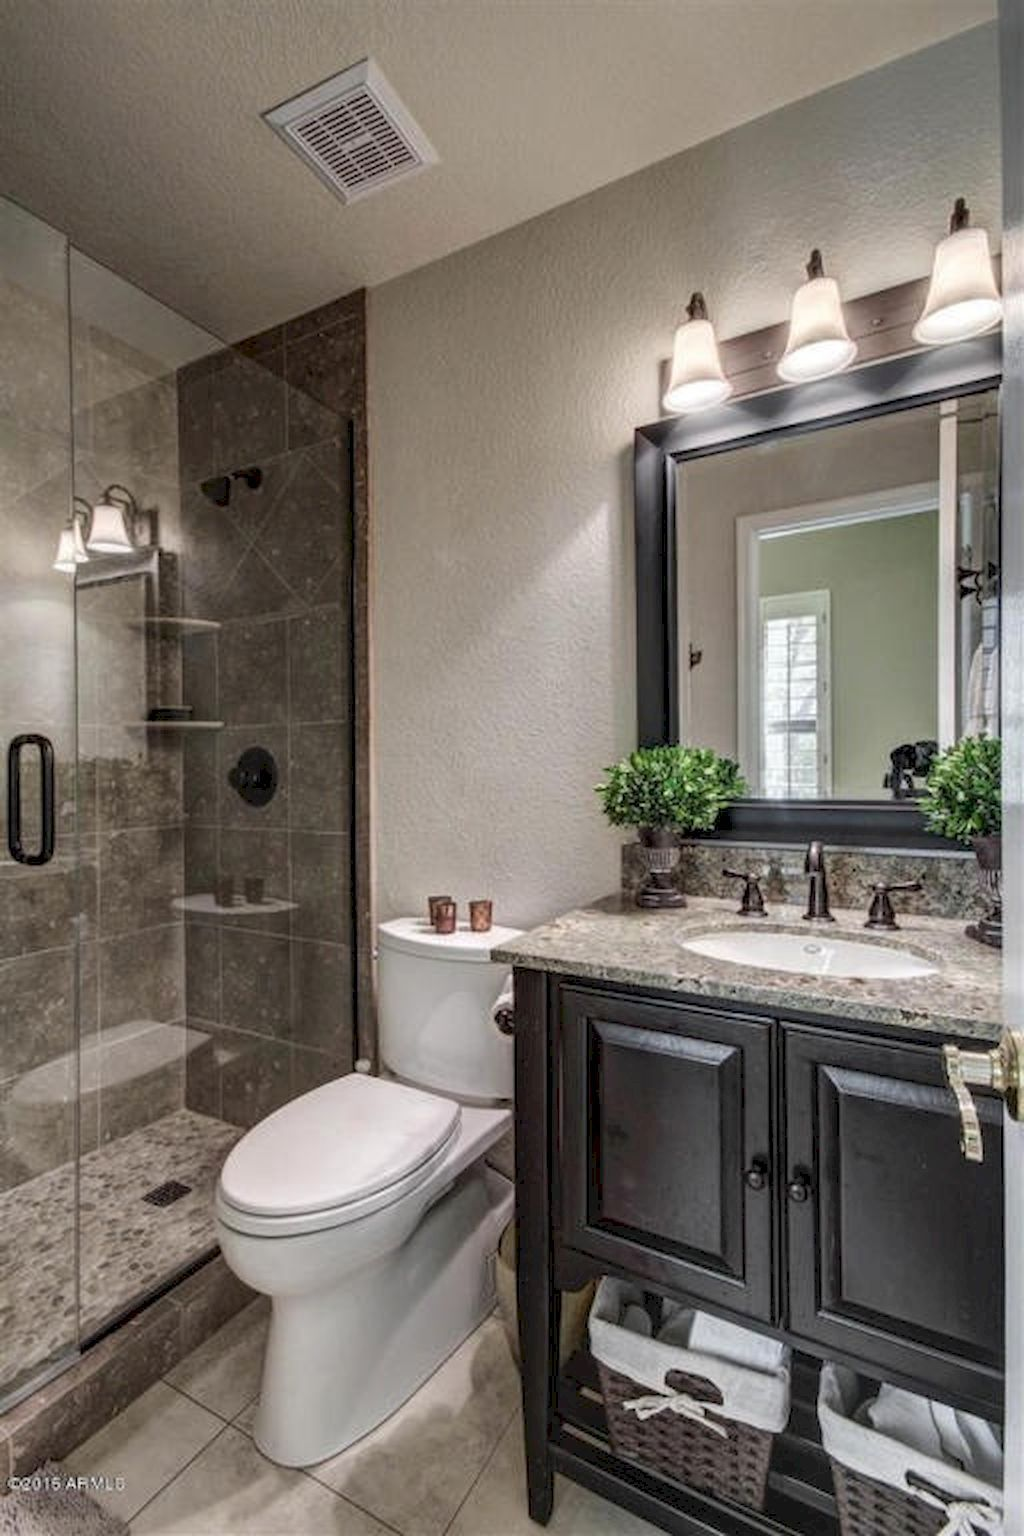 cool small master bathroom remodel ideas on a budget 49 on bathroom renovation ideas on a budget id=73555